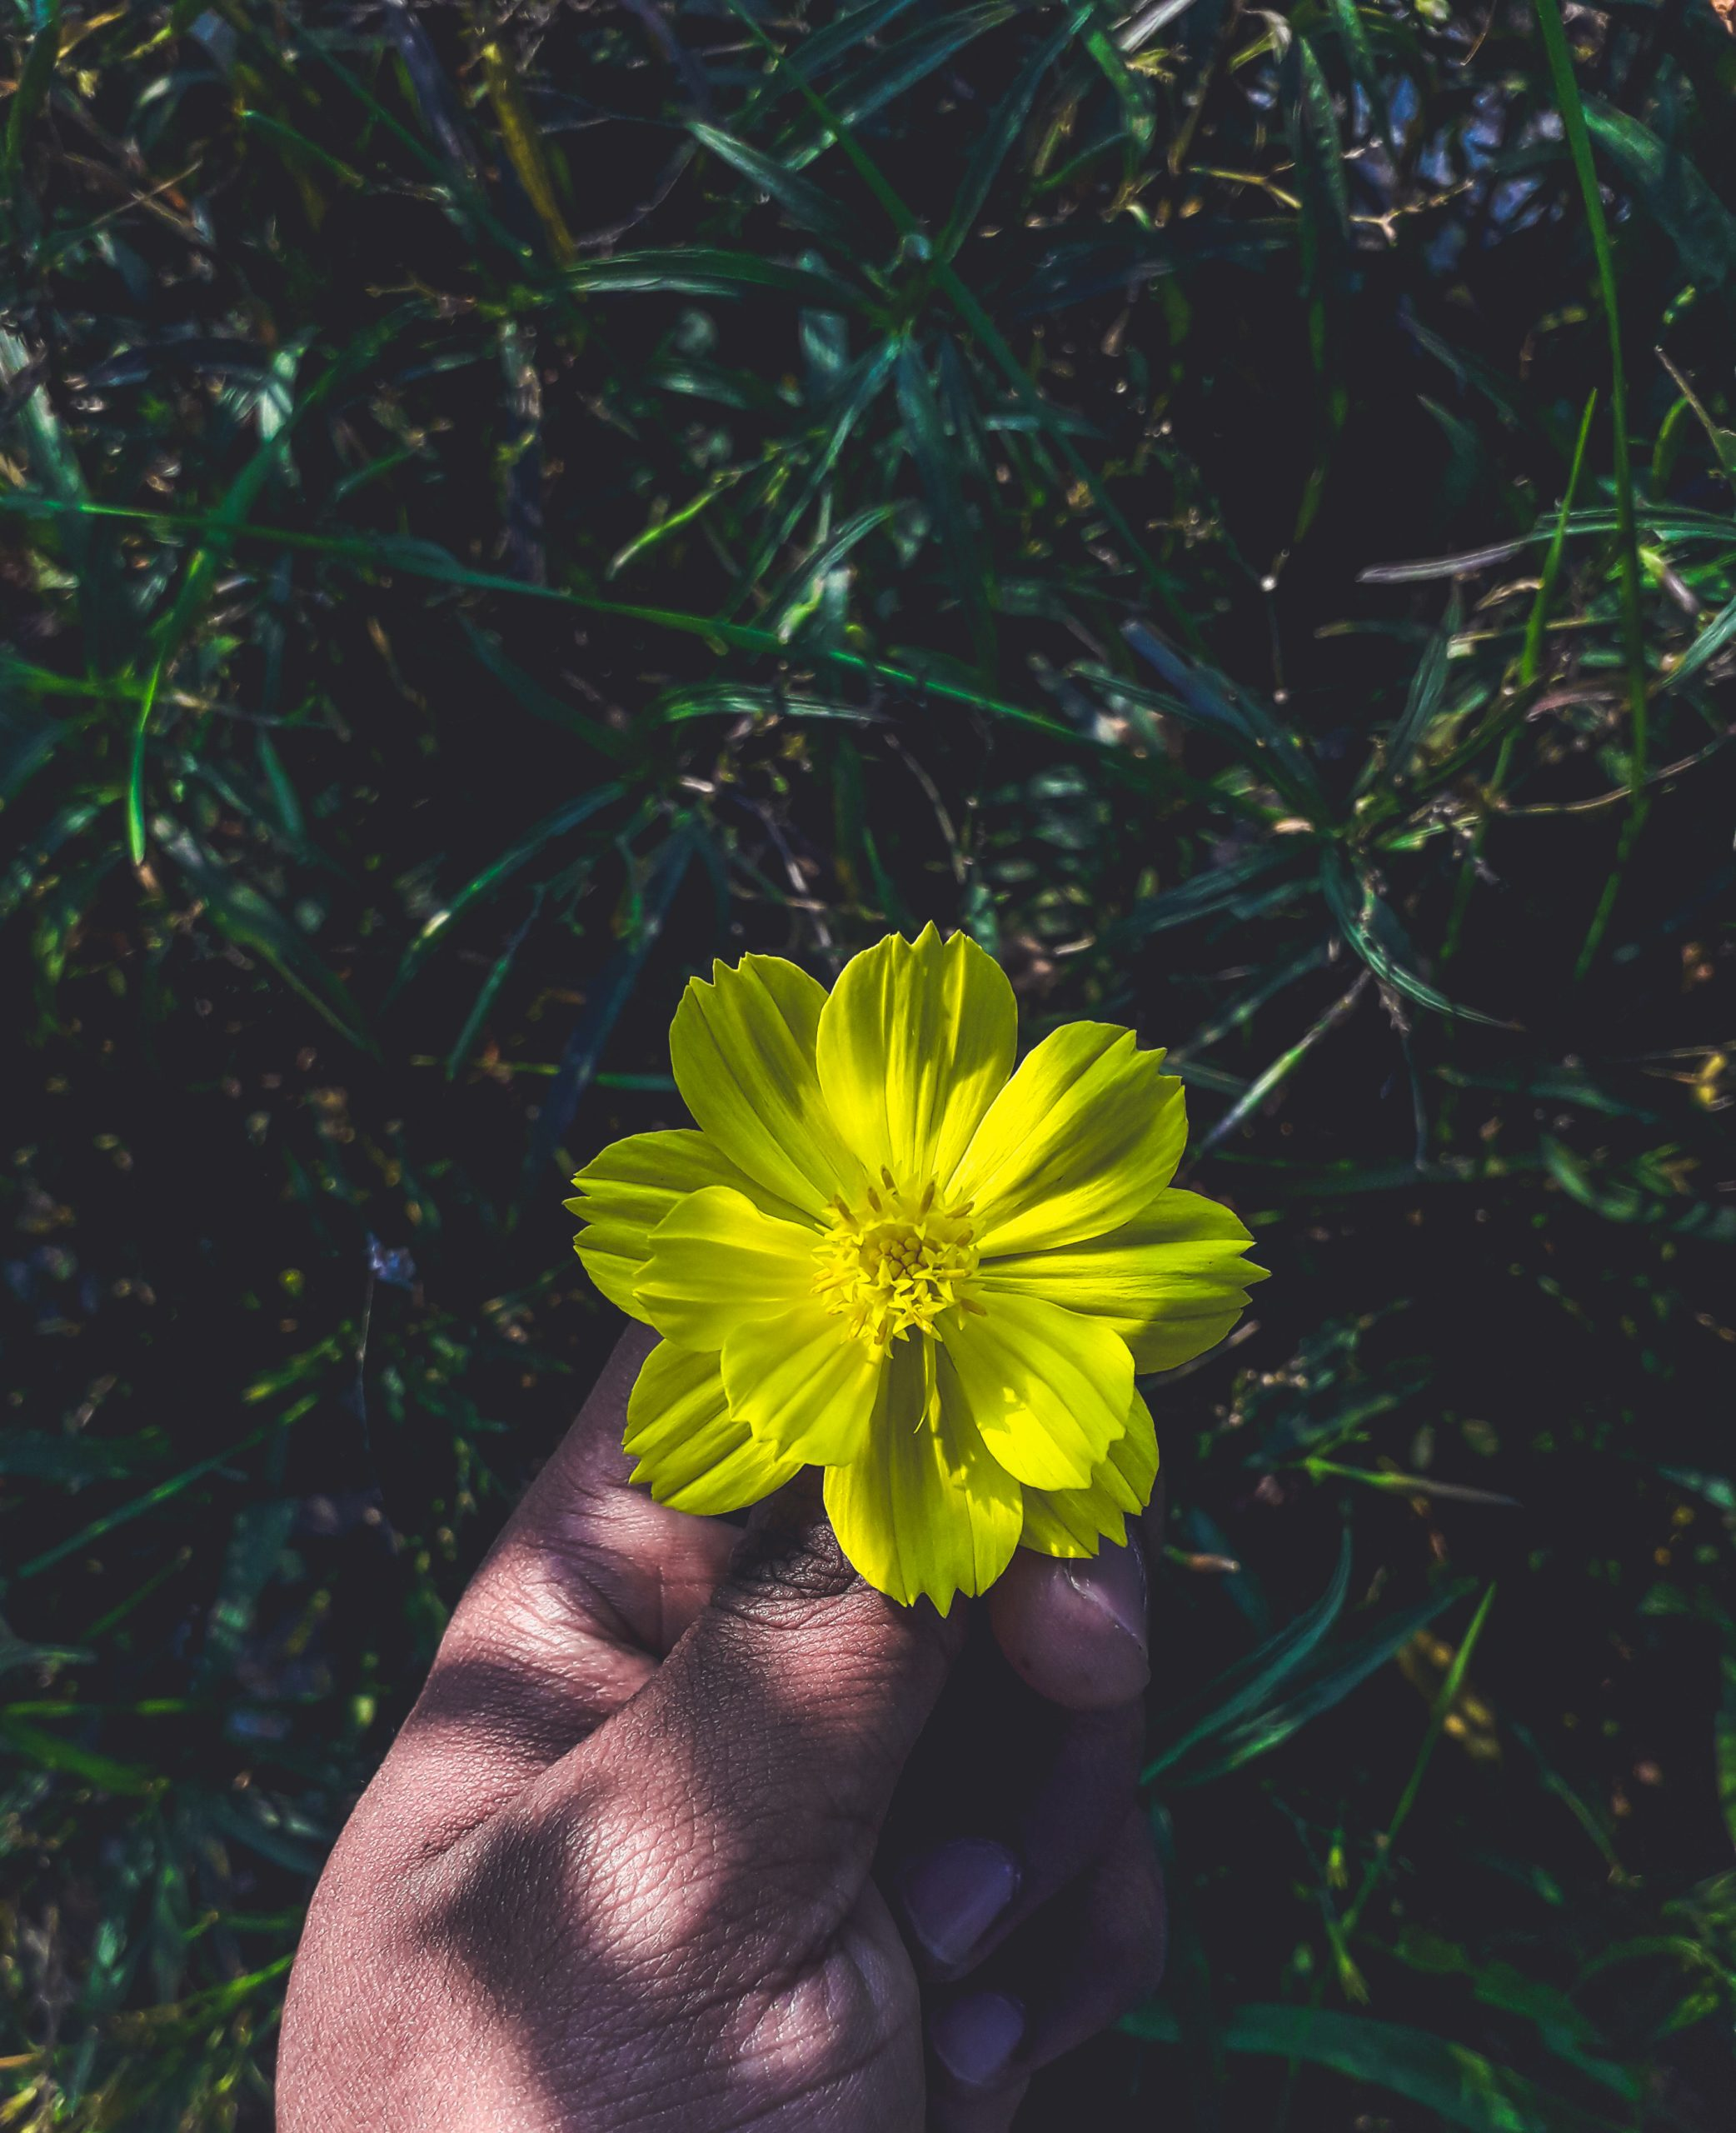 A flower in hand